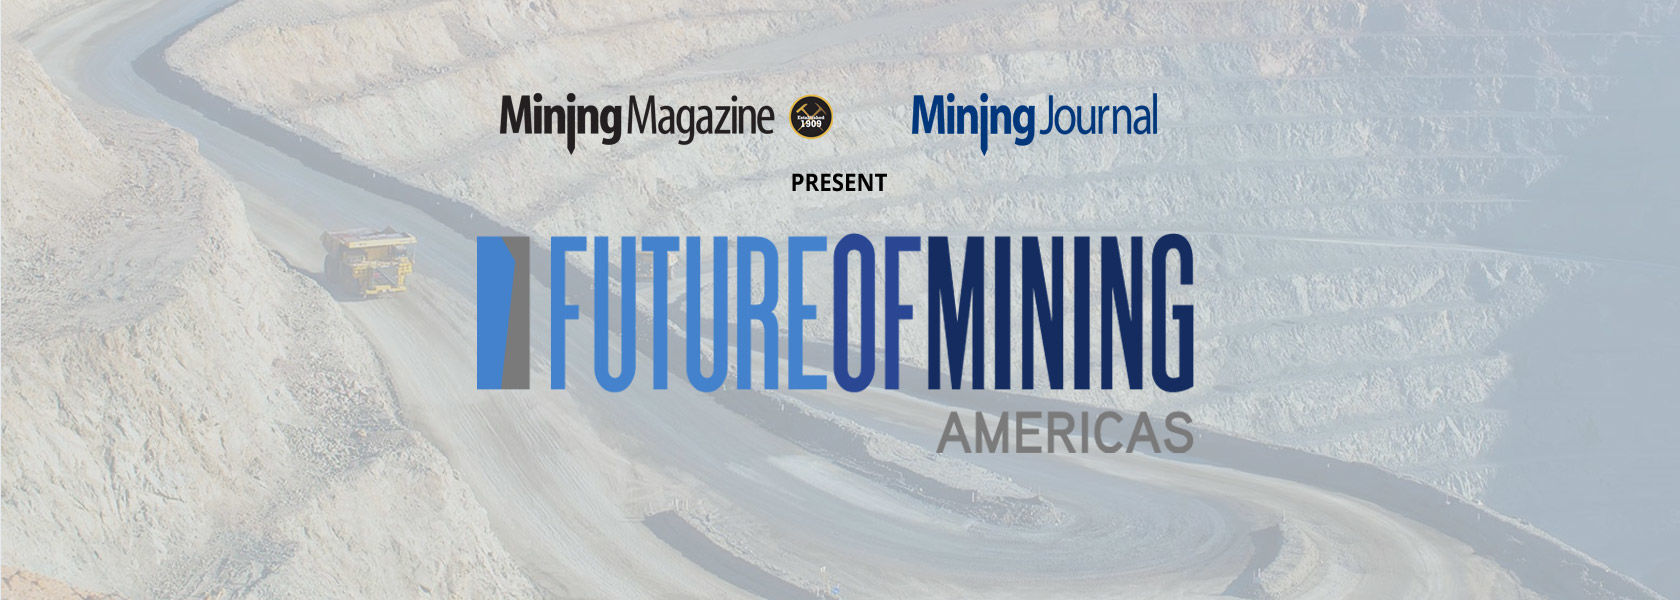 The Future of Mining Americas 2019